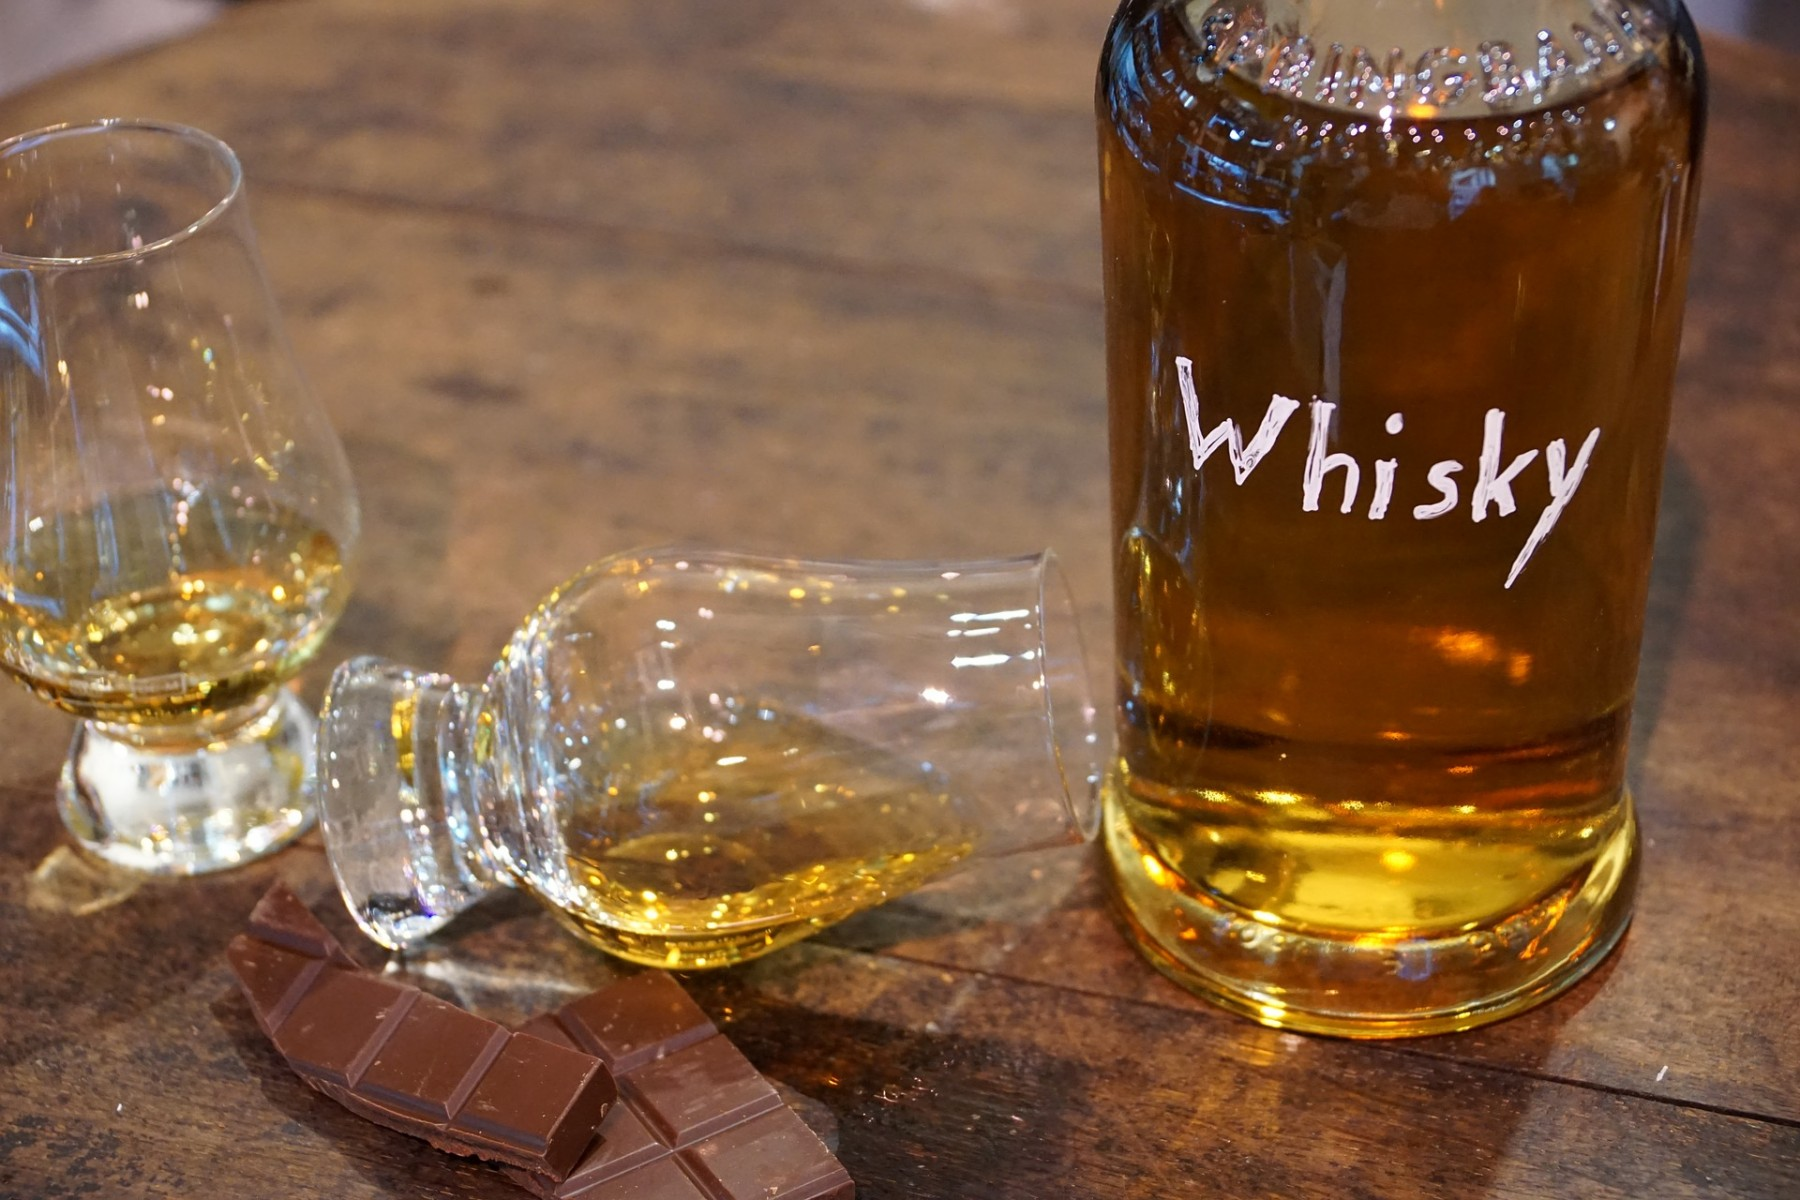 Could your whisky be fake?